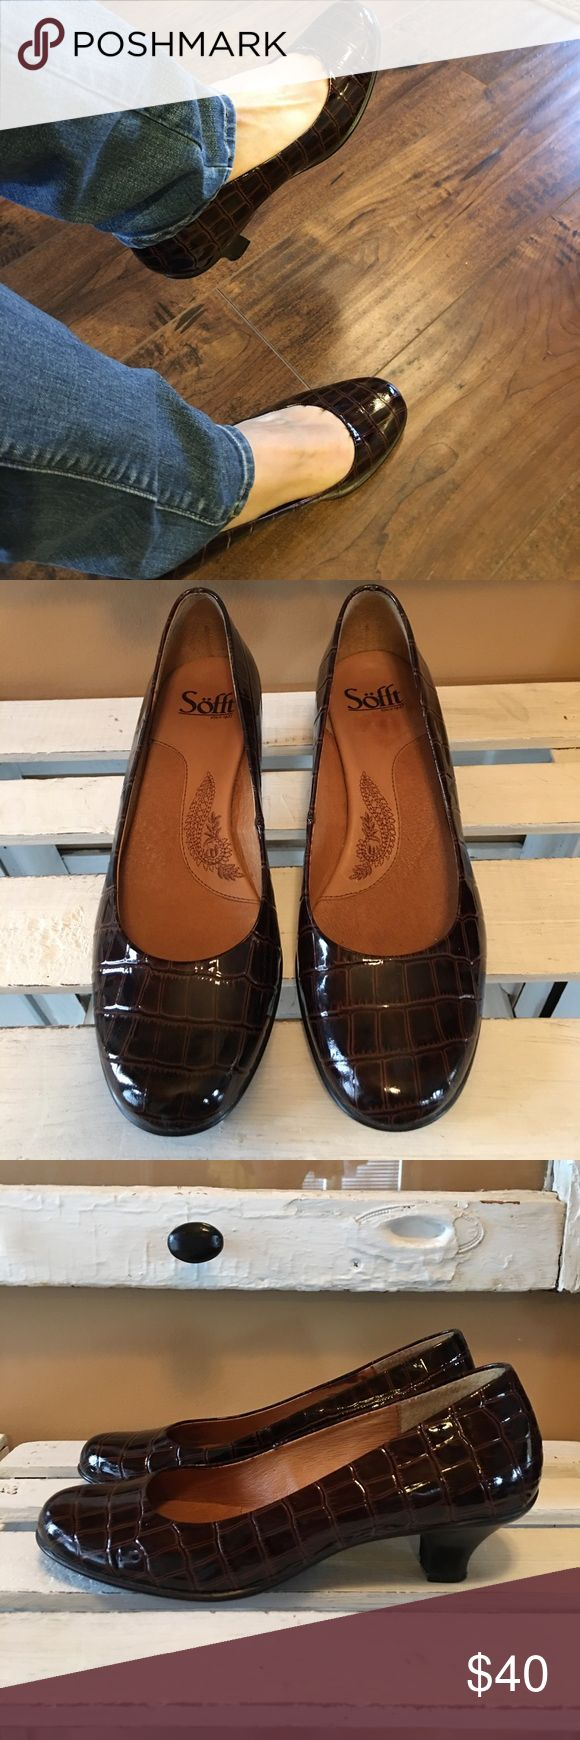 "Sofft women's pumps Great look. Like new condition. Very small scuff on heel, not even noticeable, almost missed it. Smoke free and pet free home. Brownish color, alligator pattern, 2"" heel. Sofft Shoes Heels"